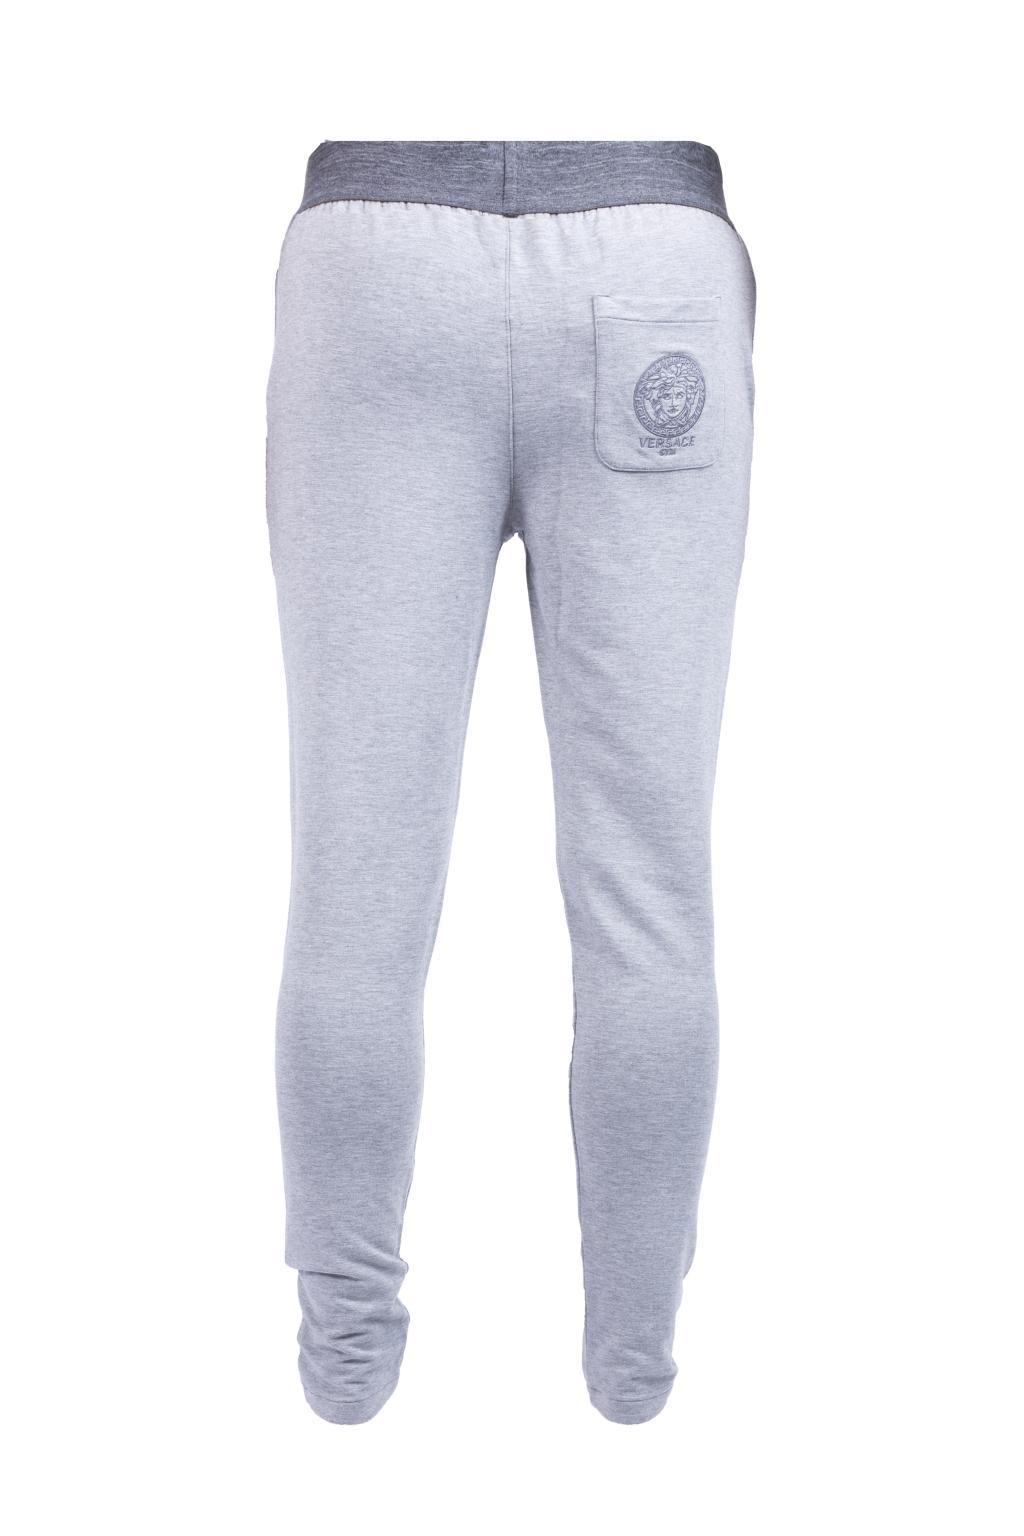 Versace Synthetic Pyjama Trousers in Blue for Men